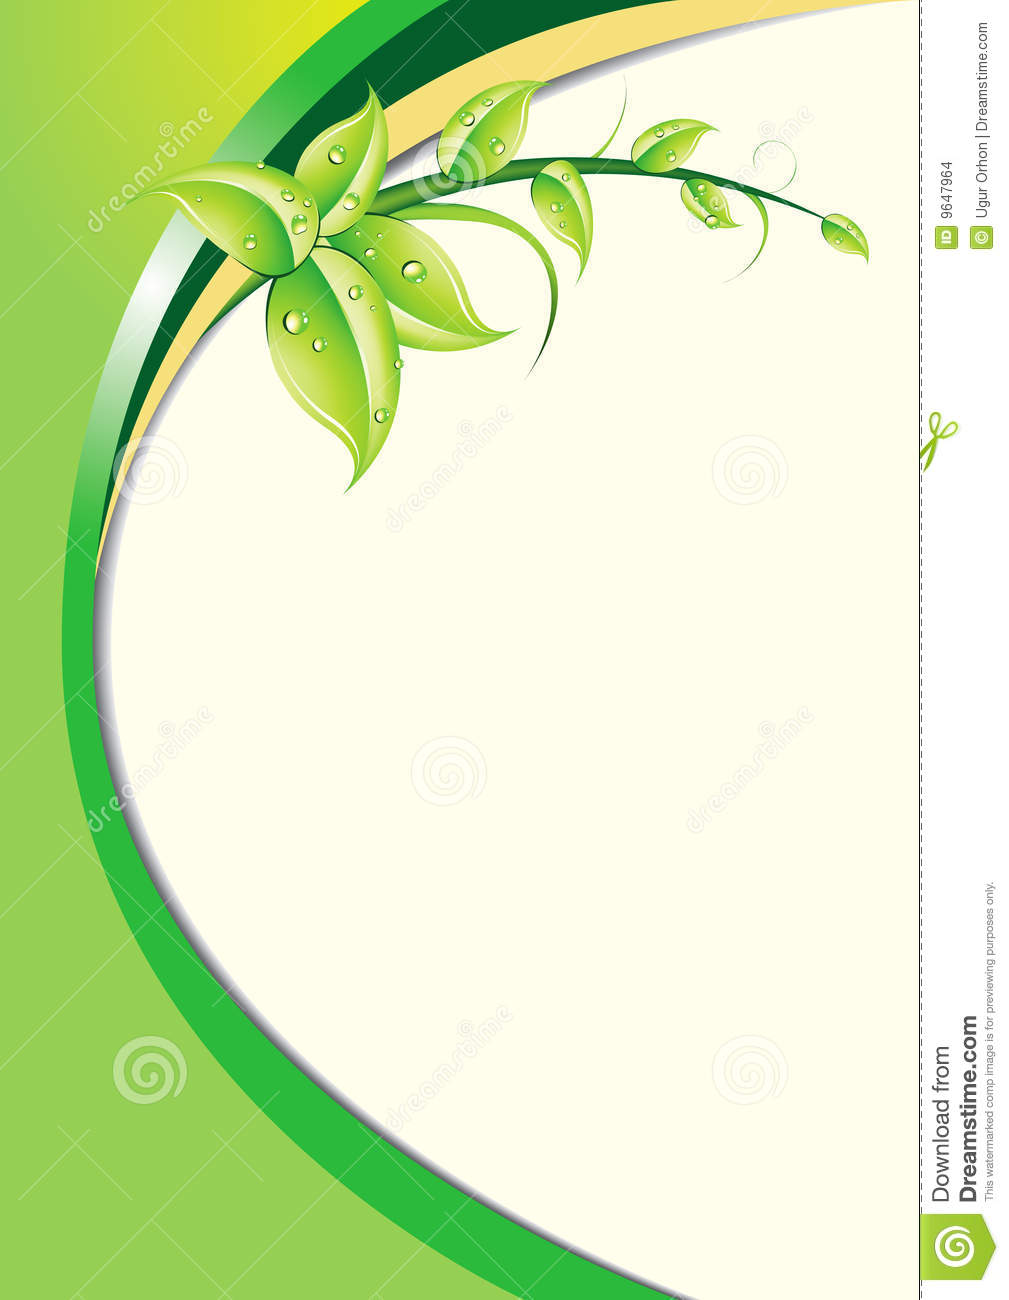 Background Floral -EPS Vector- Stock Images - Image: 9647964